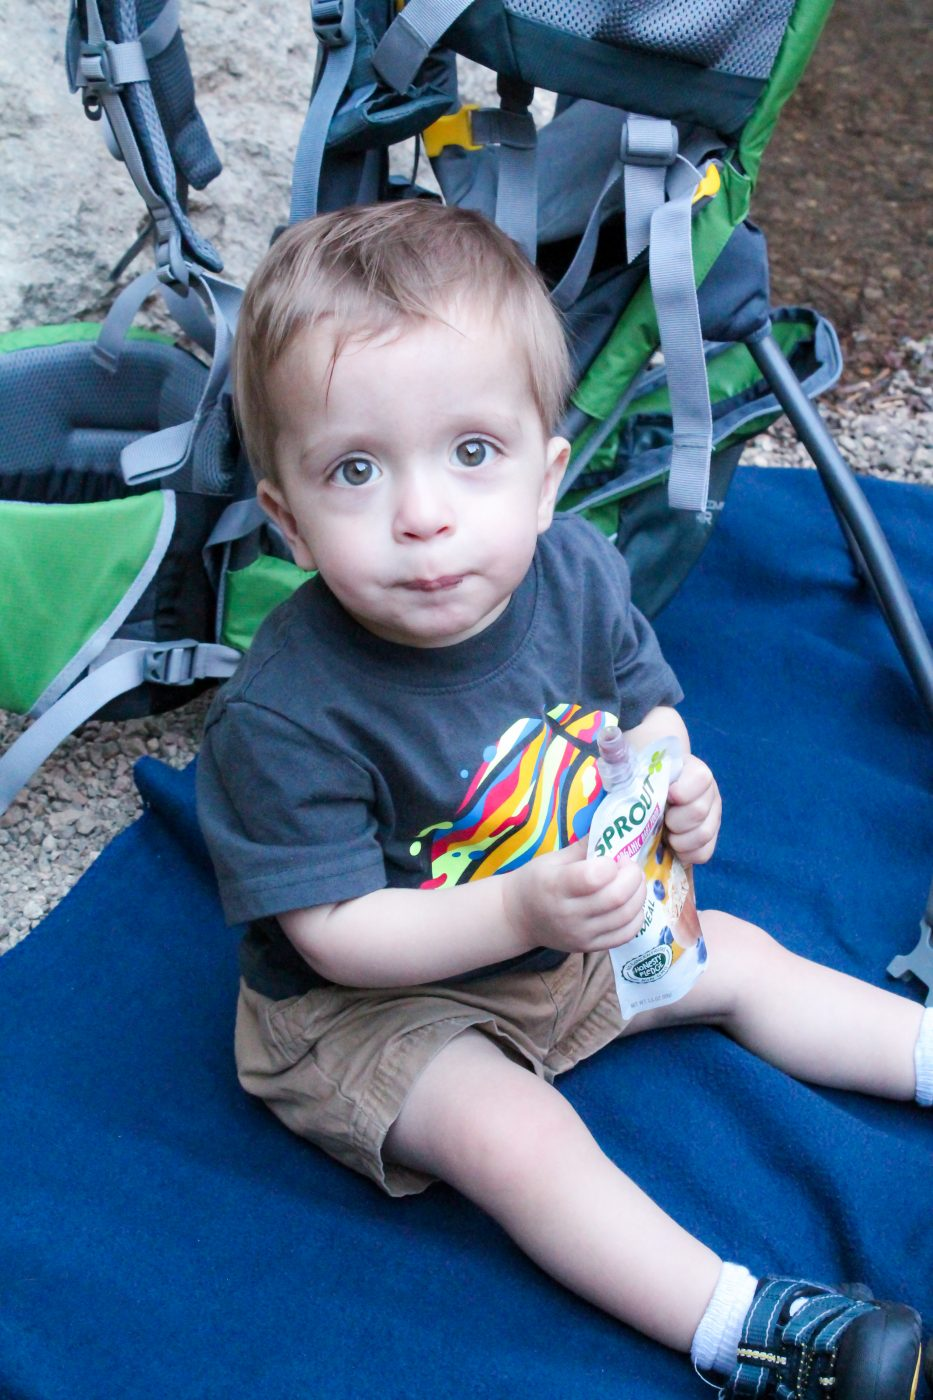 Hiking with babies- Snacks to bring